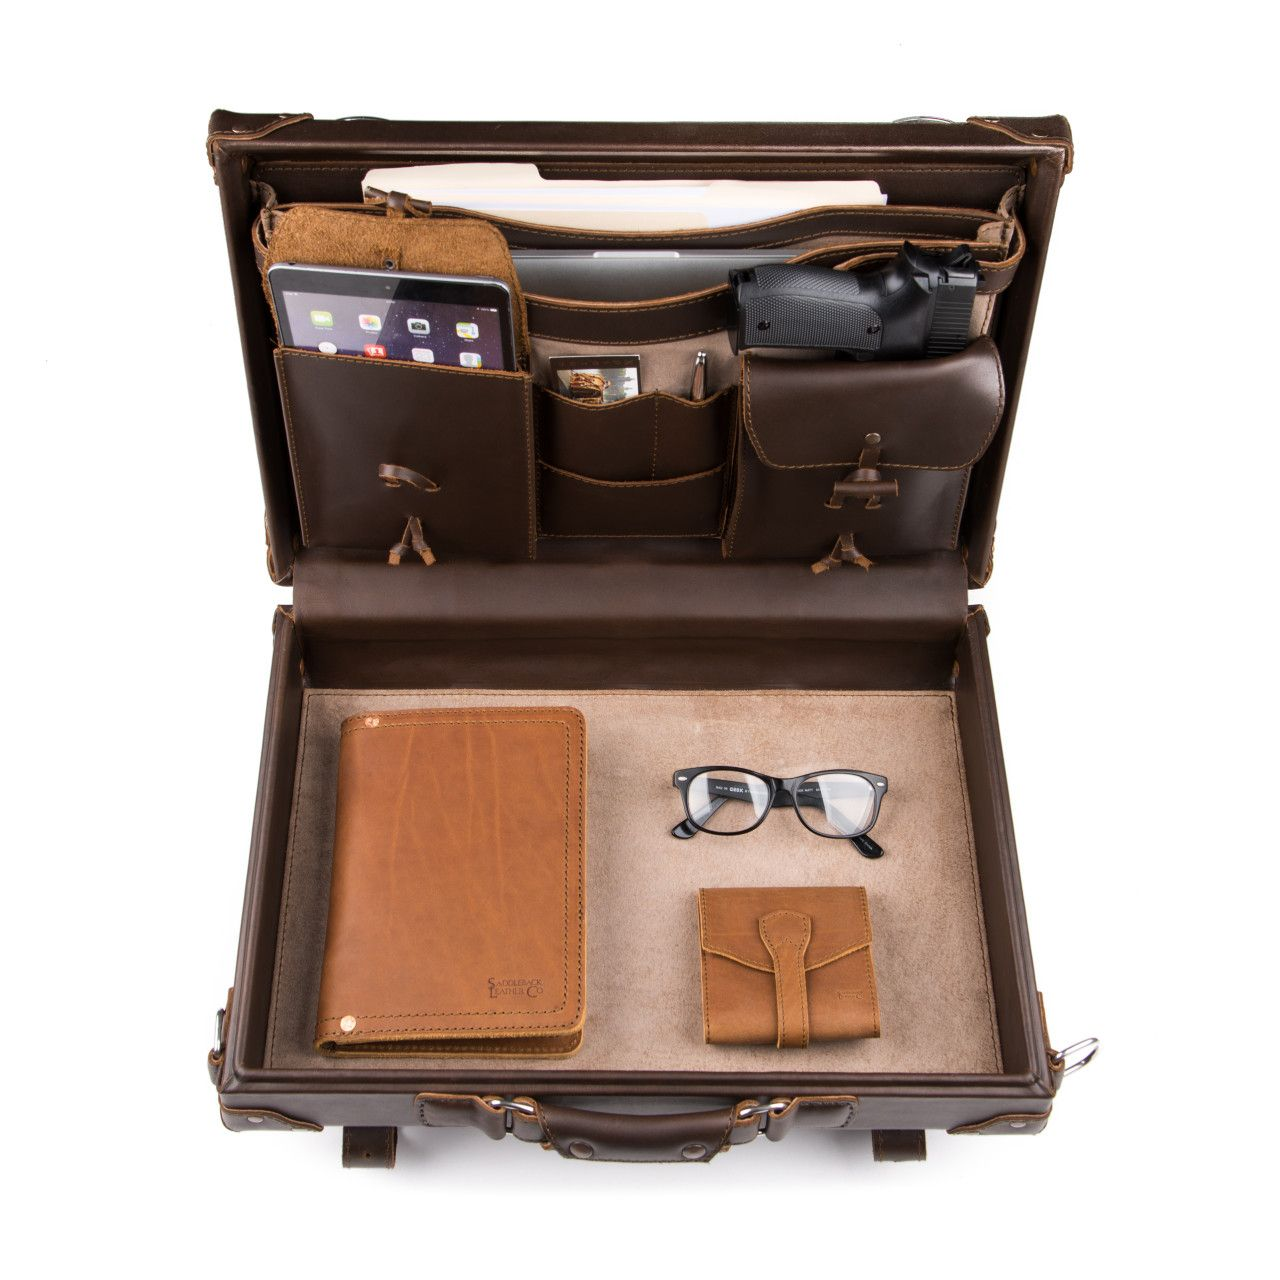 hard sided leather briefcase medium in dark coffee brown leather is great for office stuff